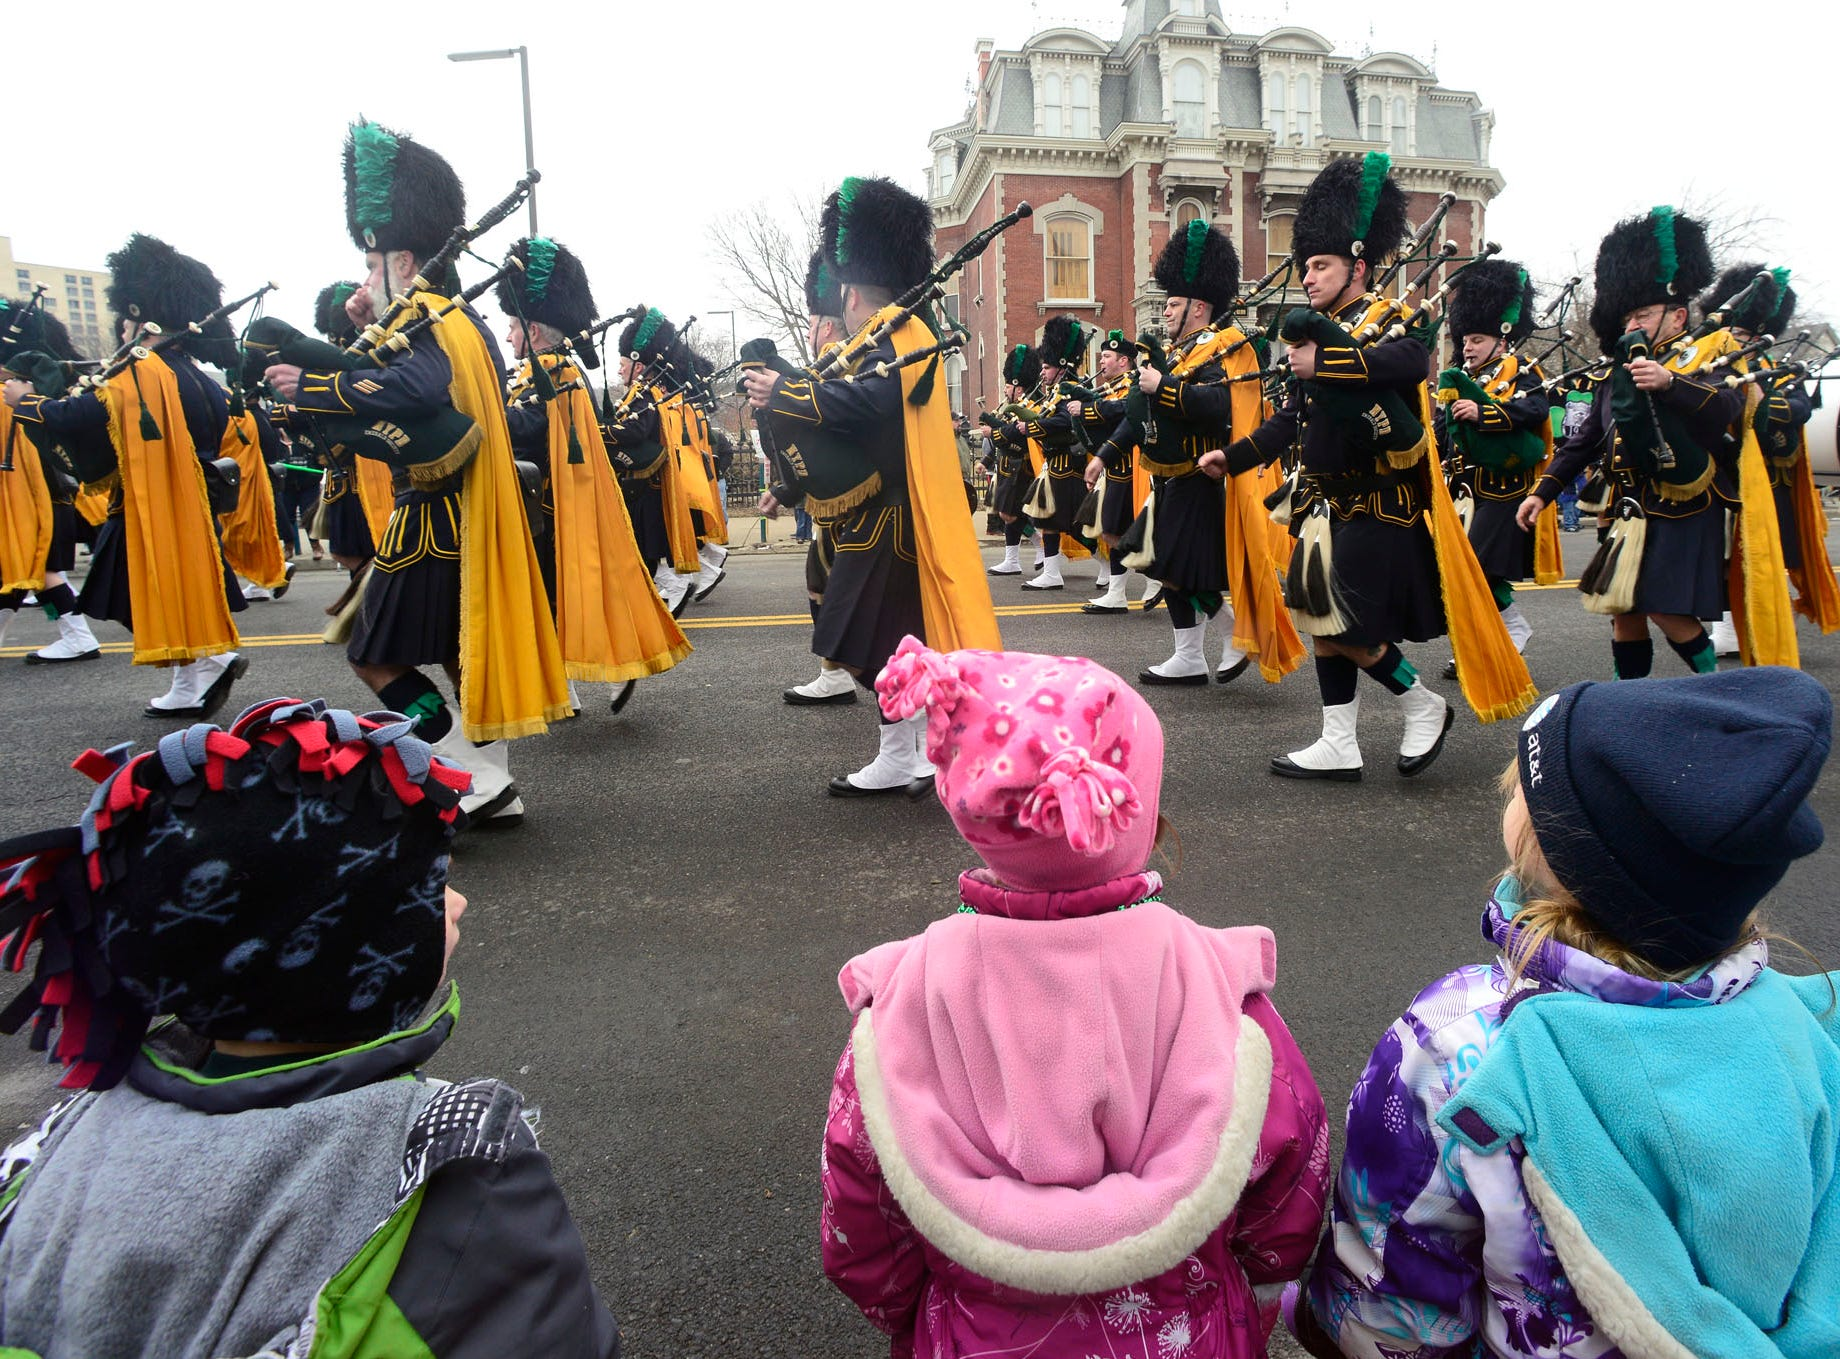 2013: Ryan Lewis, 4, right, Lauren Lewis, 4, Center, and Madi Lewis, 4, watches as the NYPD Pipes & Drums of the Emerald Society passes by during the St. Patrick's parade down Court Street in Binghamton on Saturday, March 2, 2013.